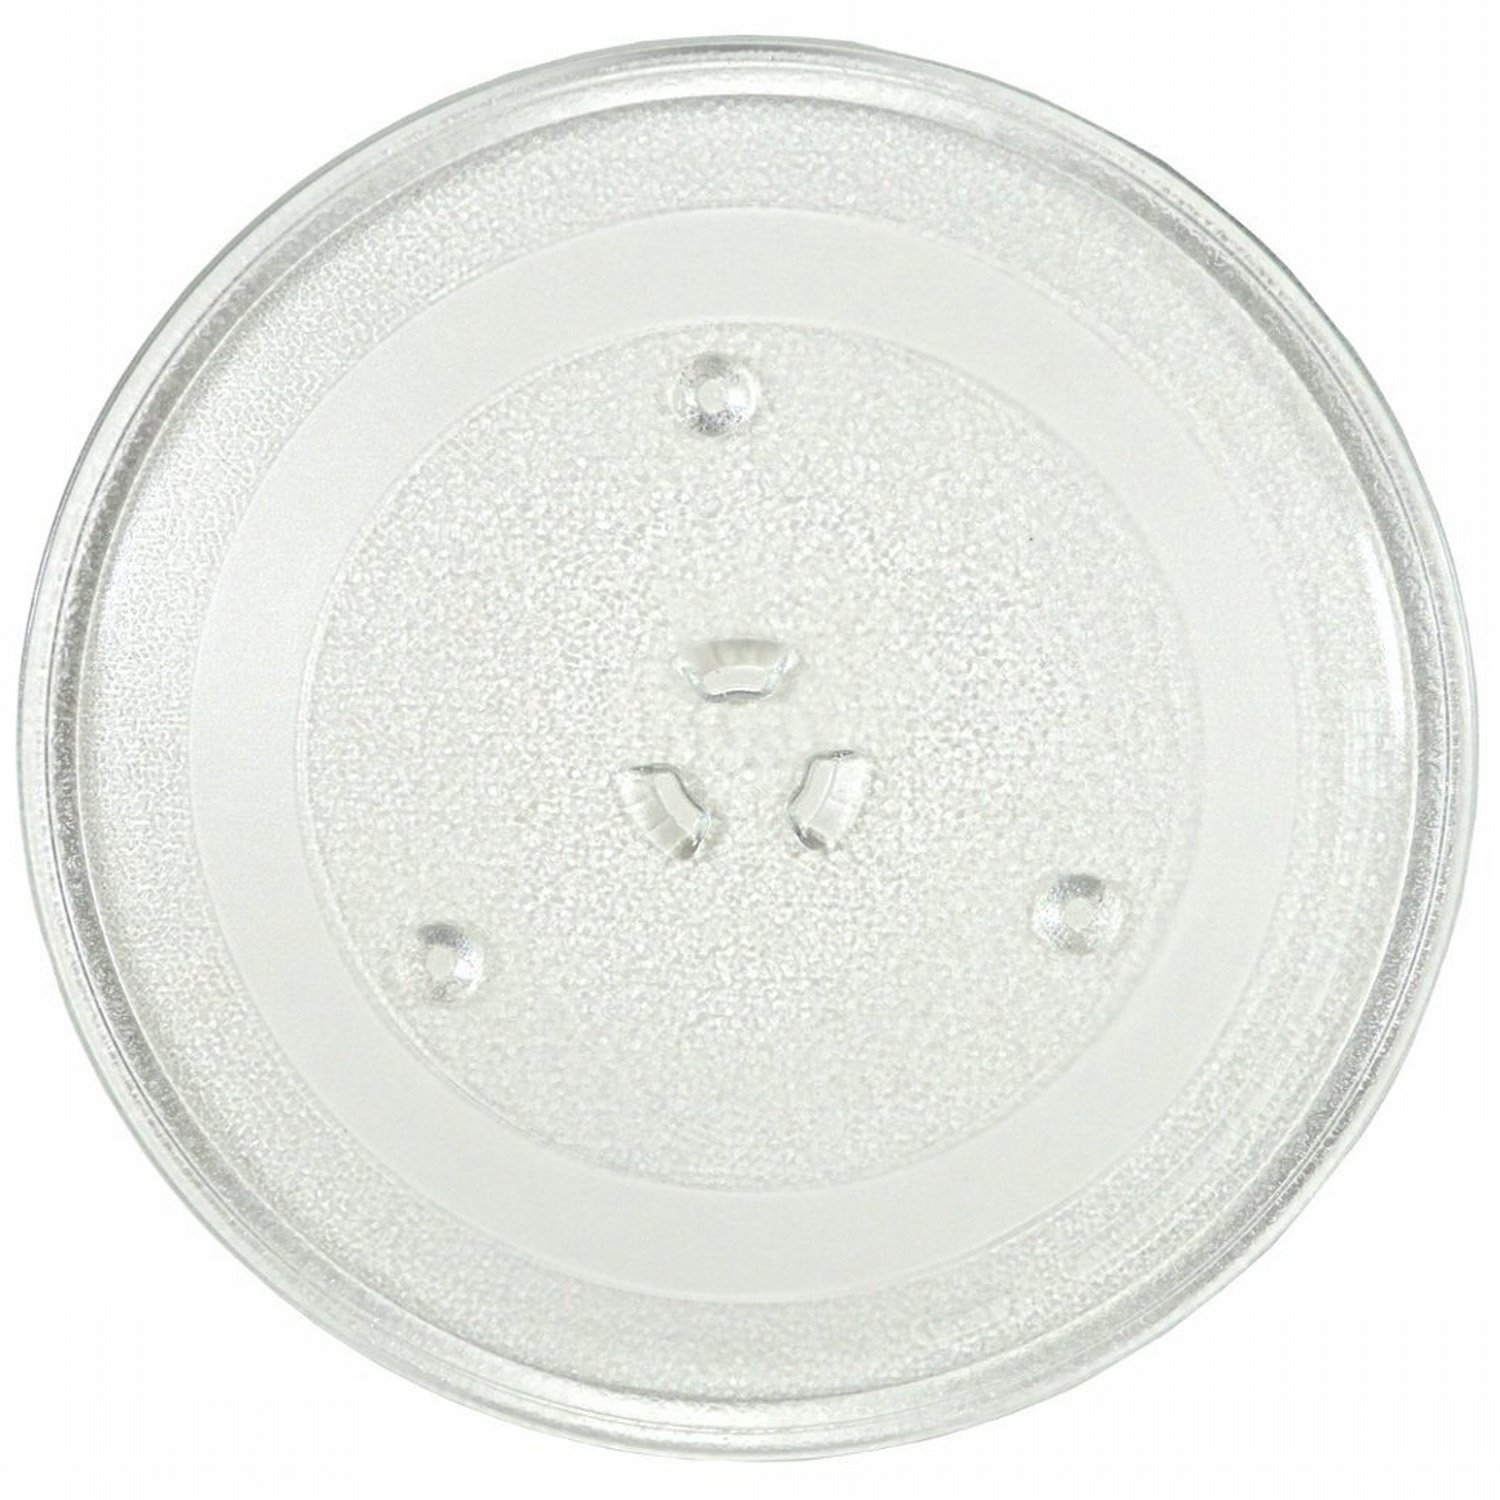 Amazon.com: GE Microwave Glass Turntable Tray BWR981290 fits ...